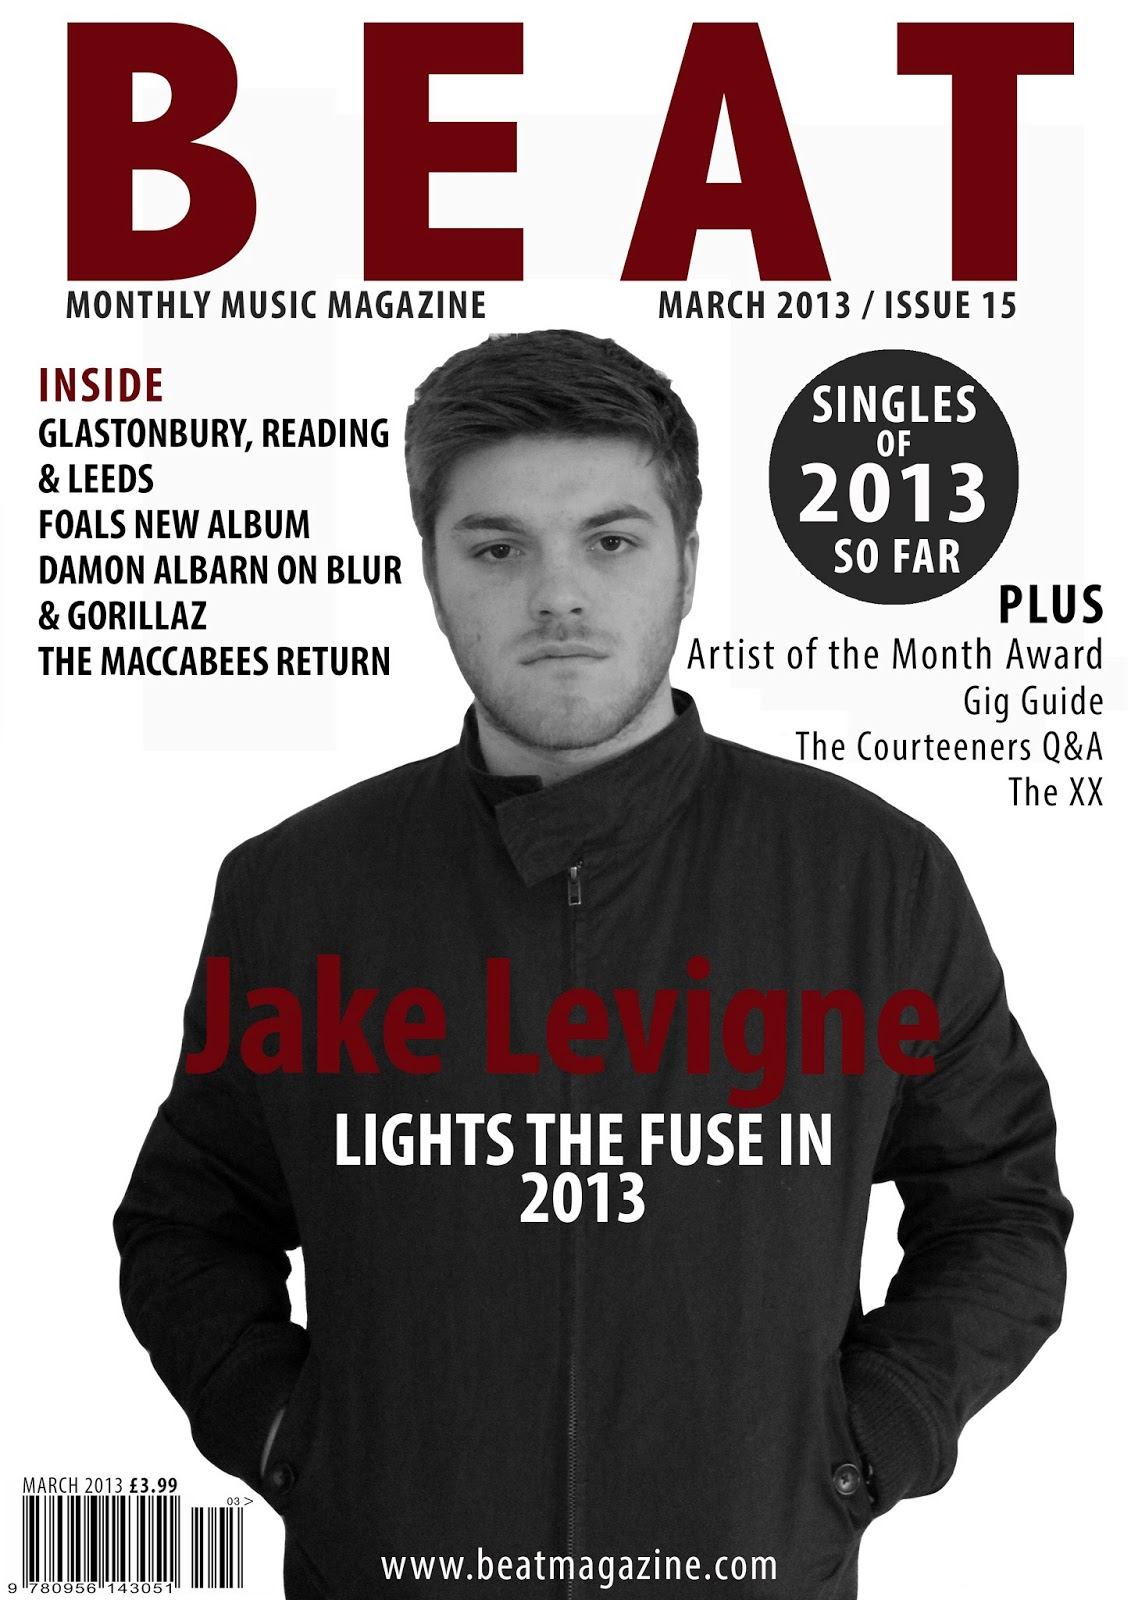 HW  Guide     Textual Analysis of Music Magazine cover   AS Media     Music Magazine Annotation